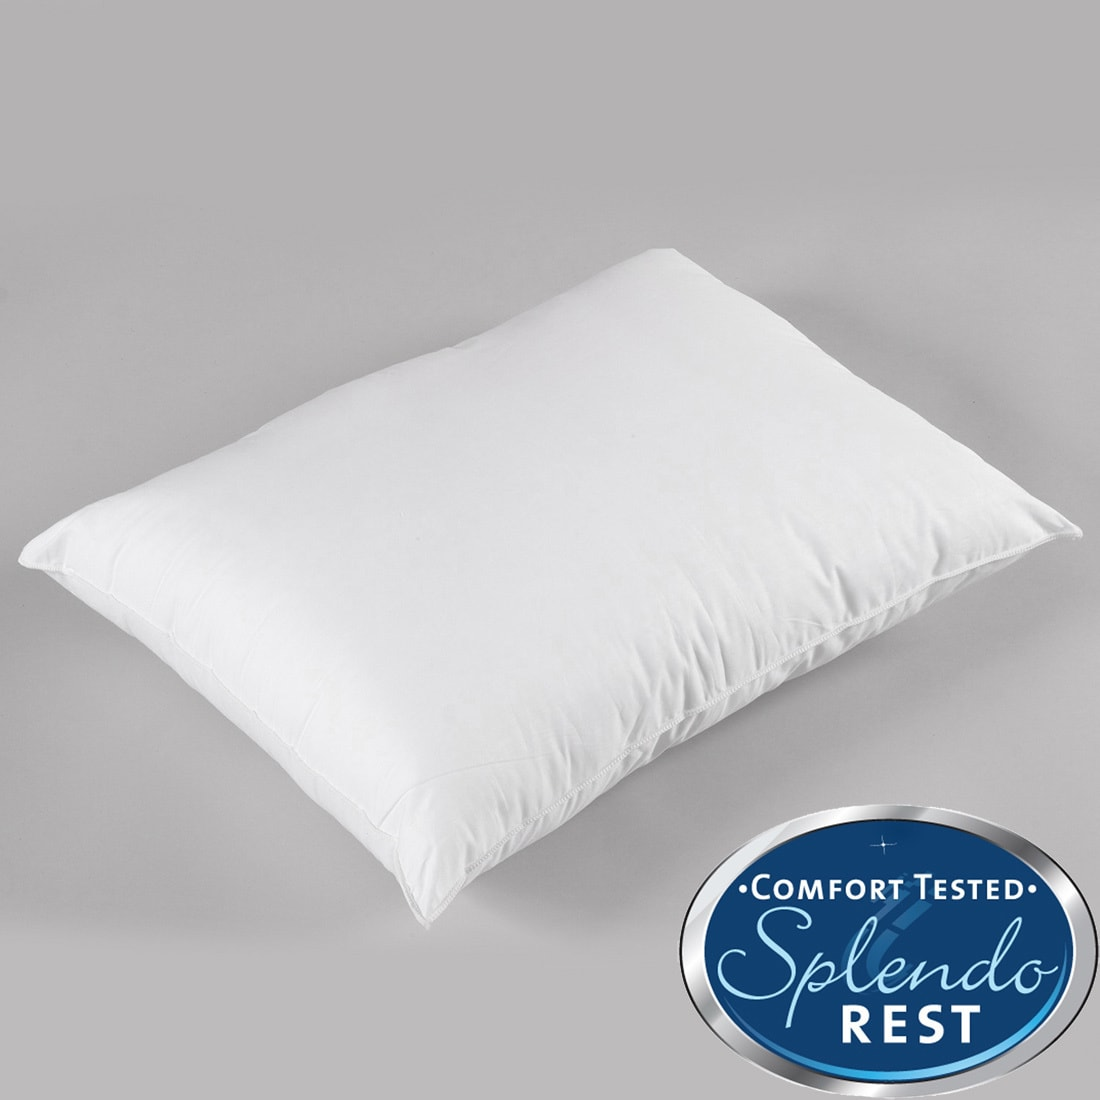 Splendorest Platinum Plus Standard Size Pillows (Pack of 12) at Sears.com